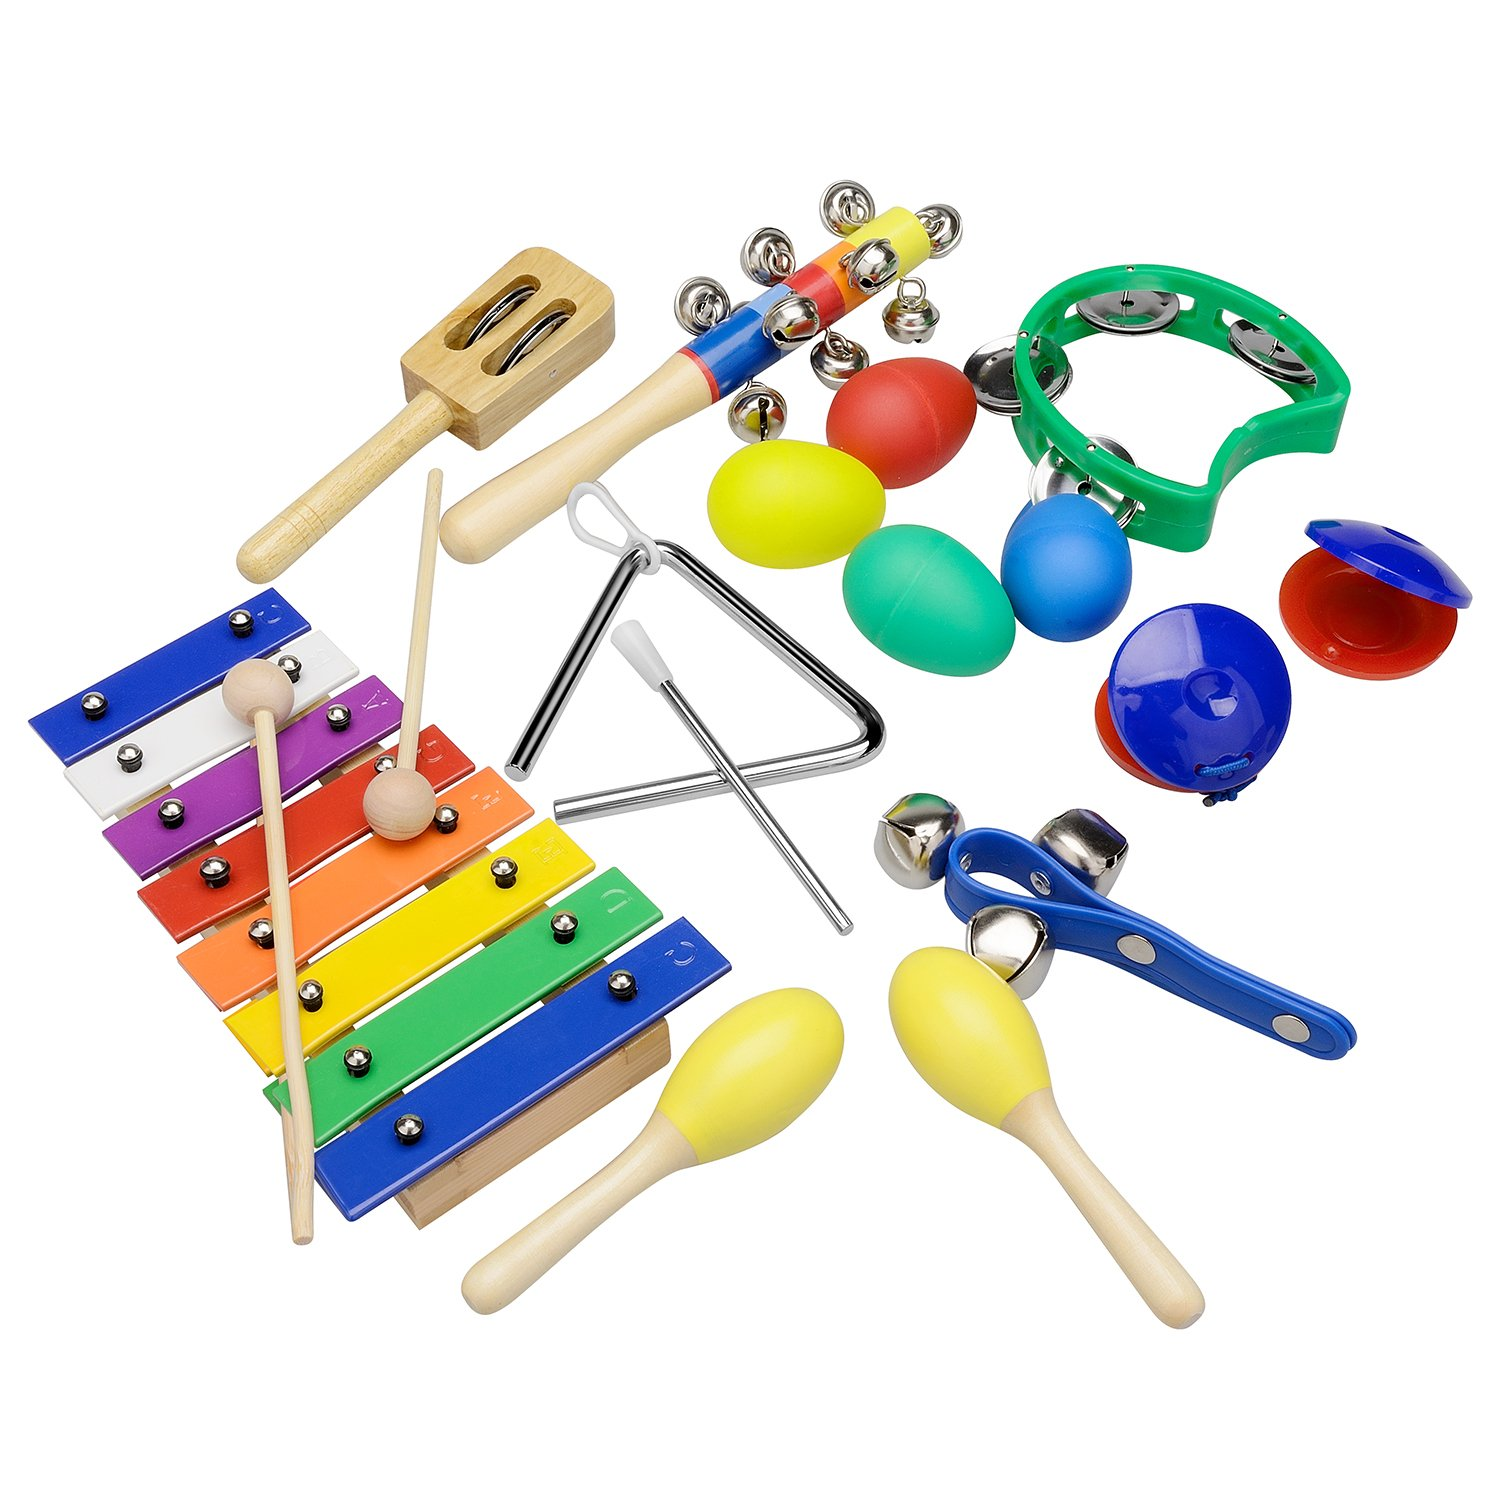 Toy Musical Instruments : Kids musical instruments matttroy